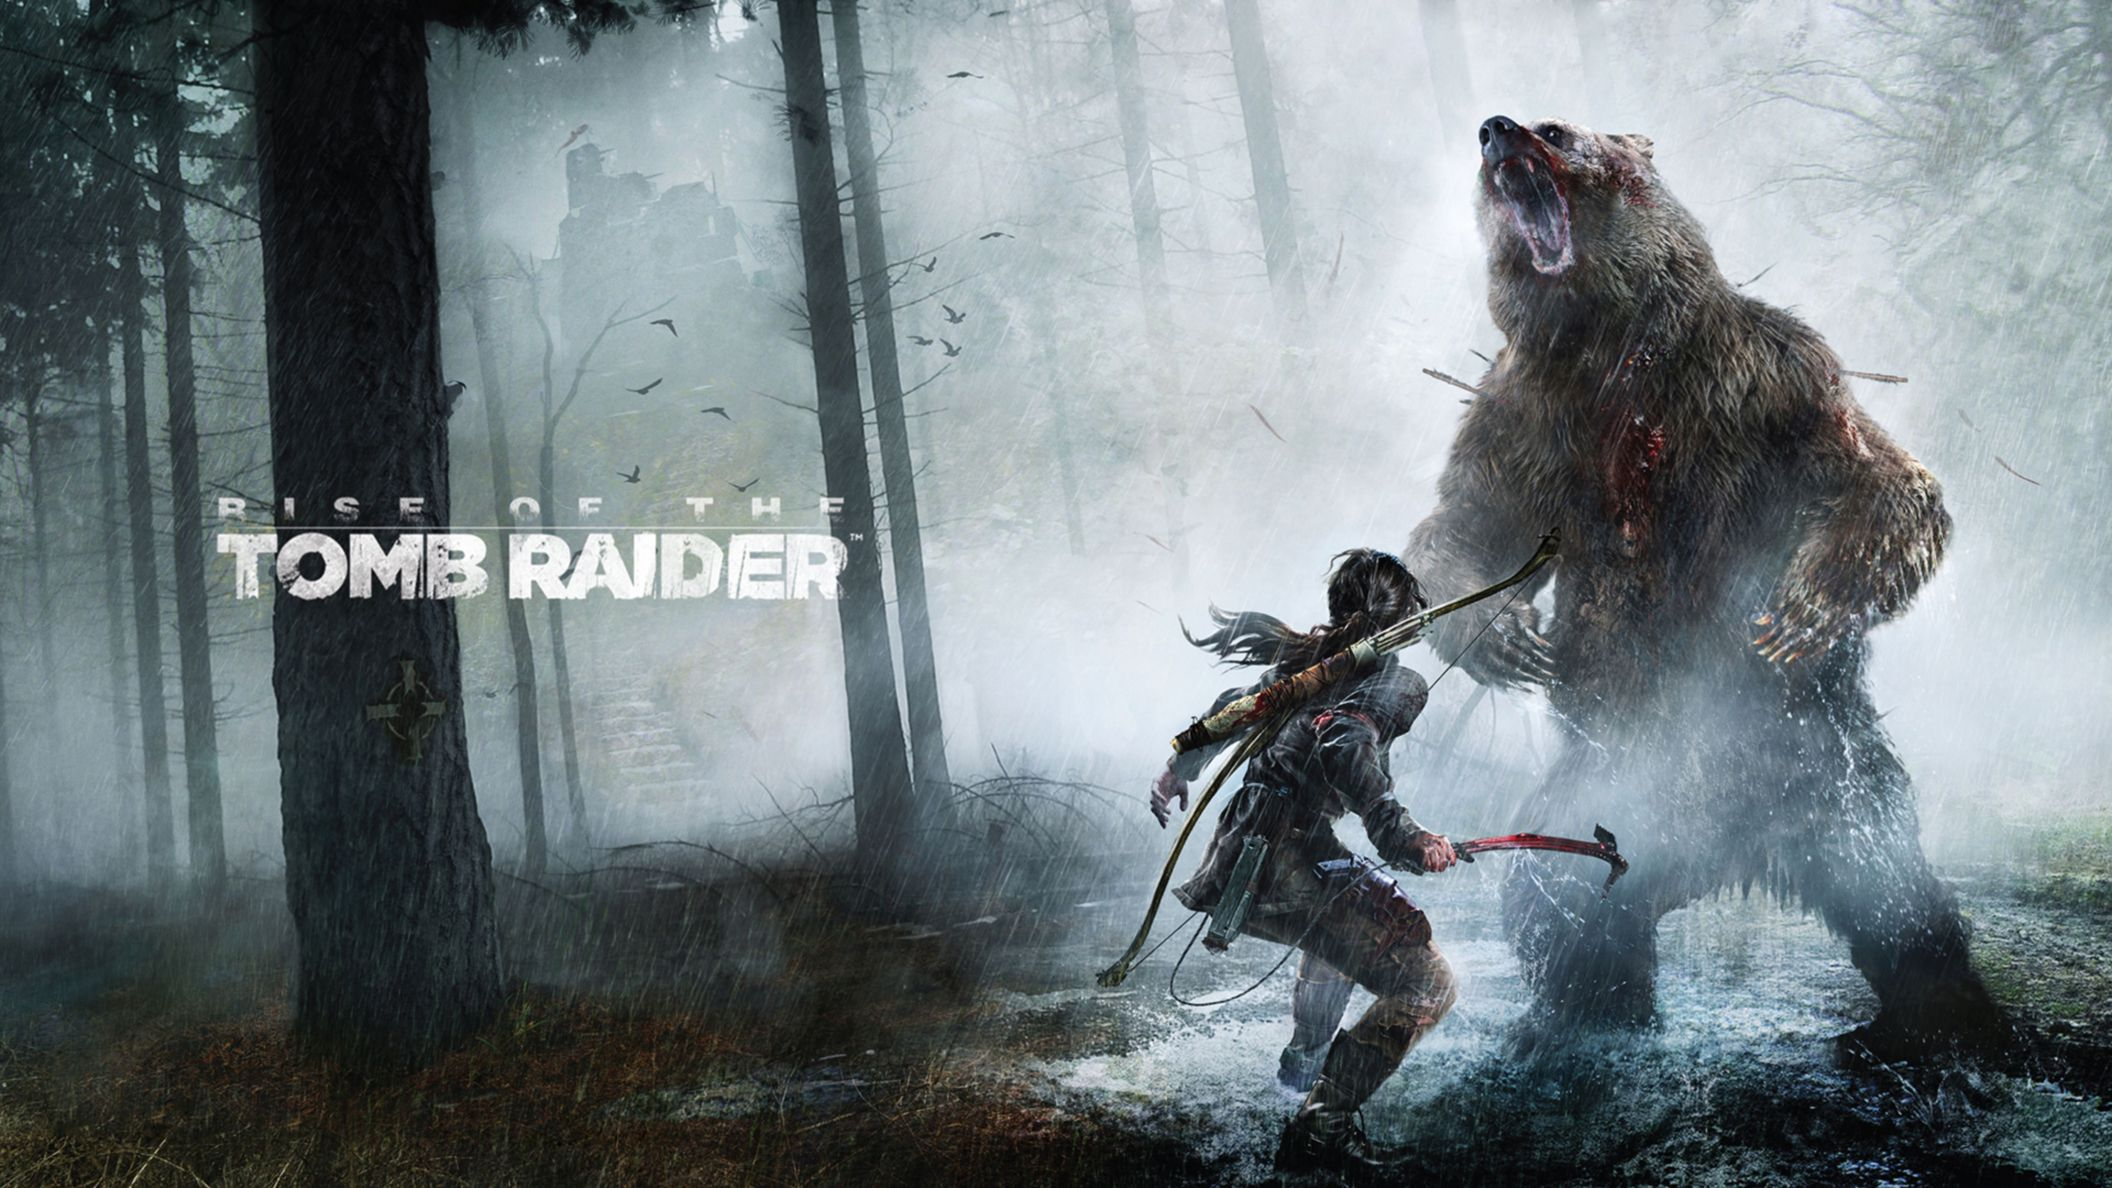 Download free HD Rise of The Tomb Raider Pc Game HD Wallpaper, image